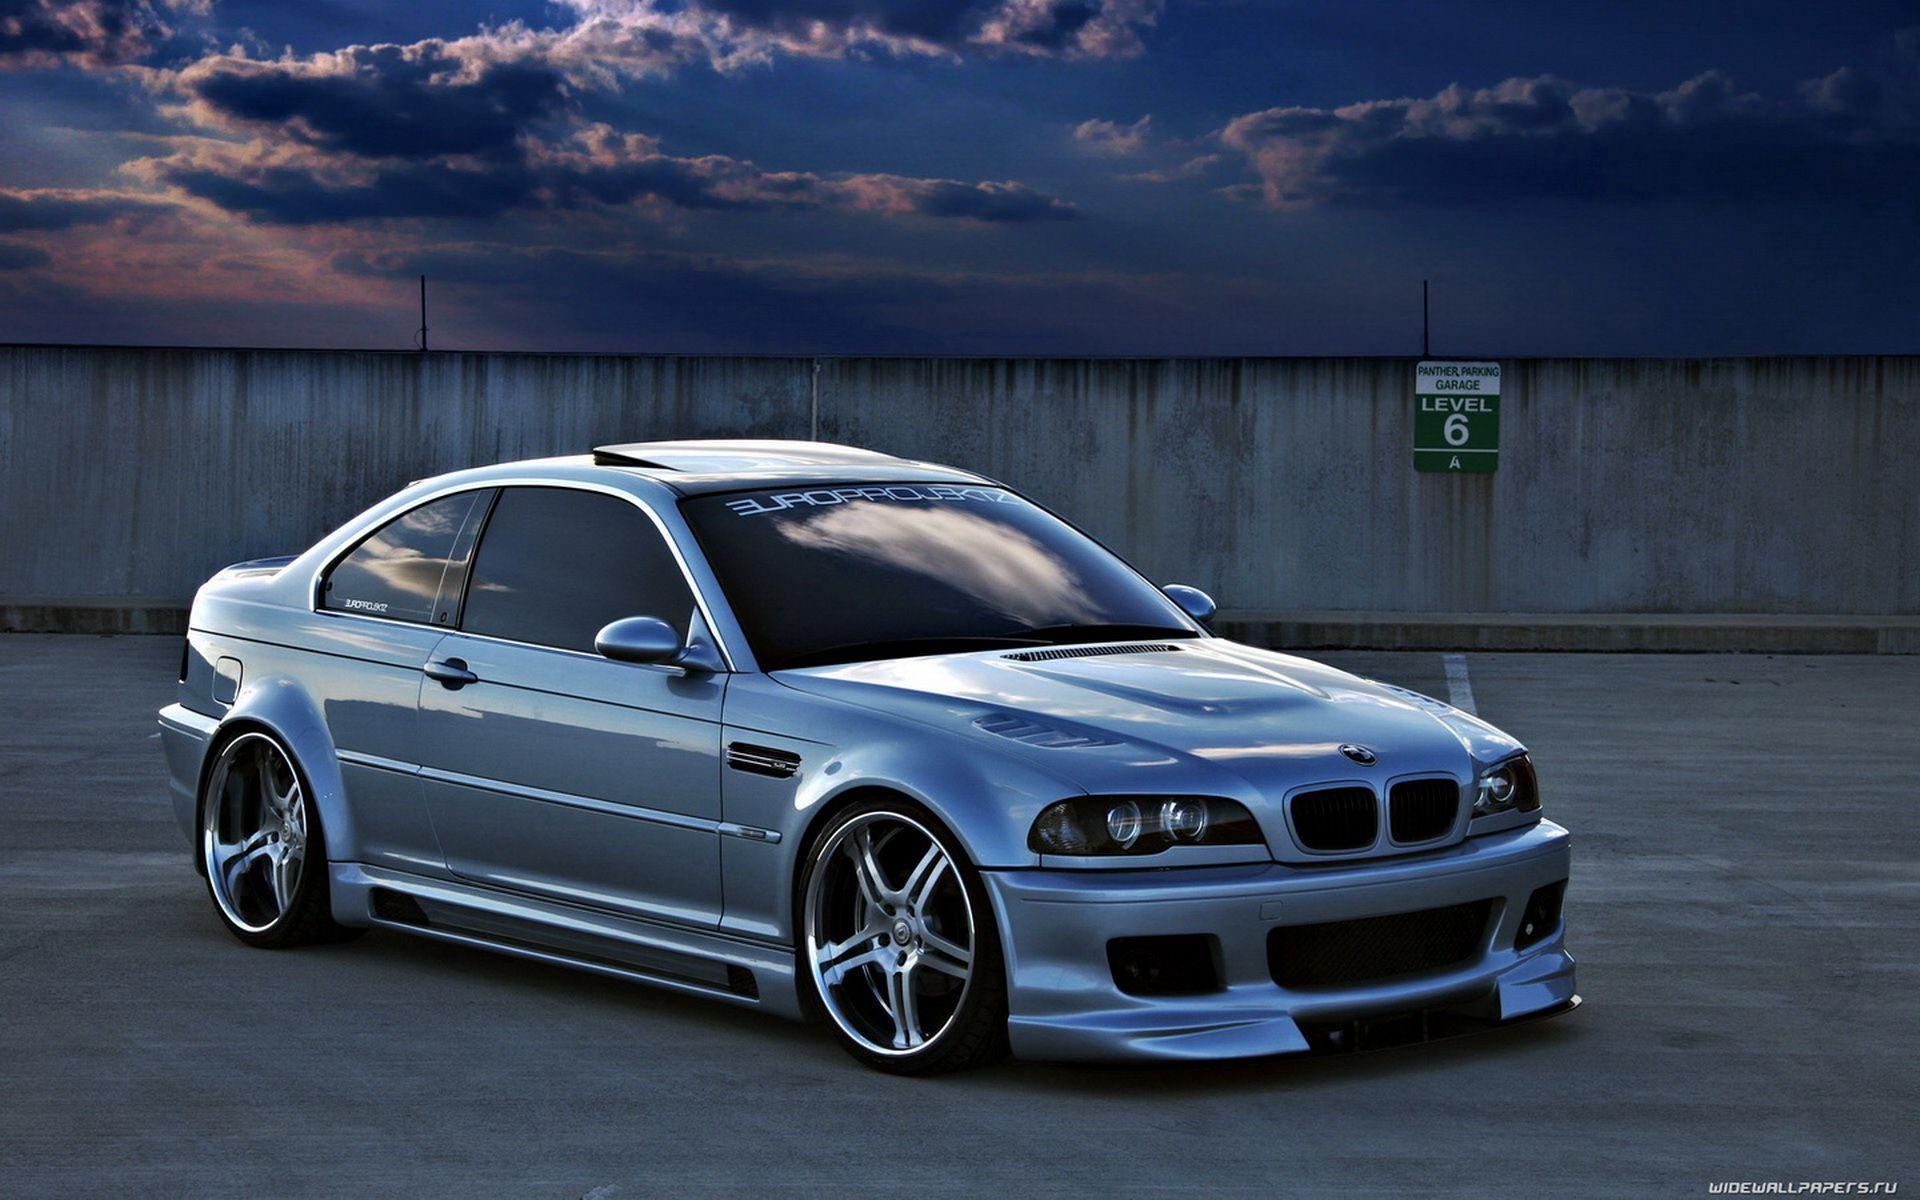 bmw e46 m3 wallpapers wallpaper cave. Black Bedroom Furniture Sets. Home Design Ideas